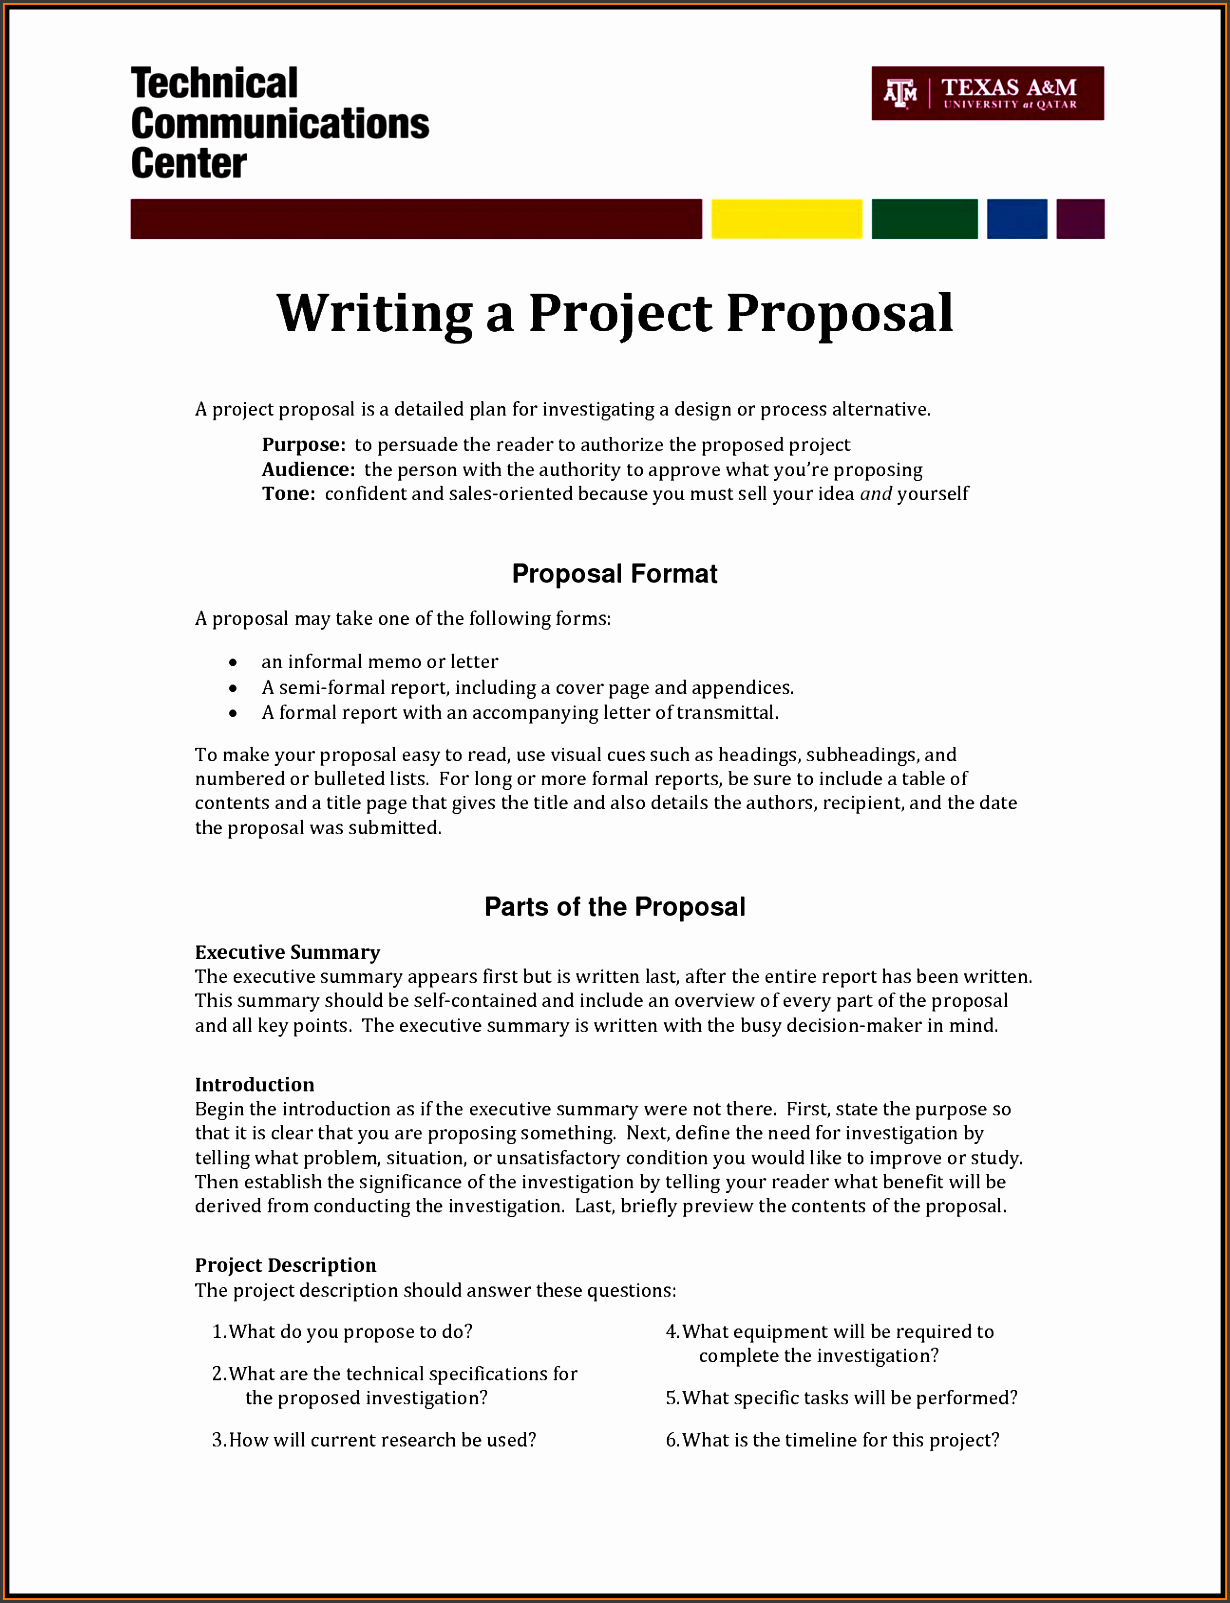 blank job proposal form how to write a job proposal